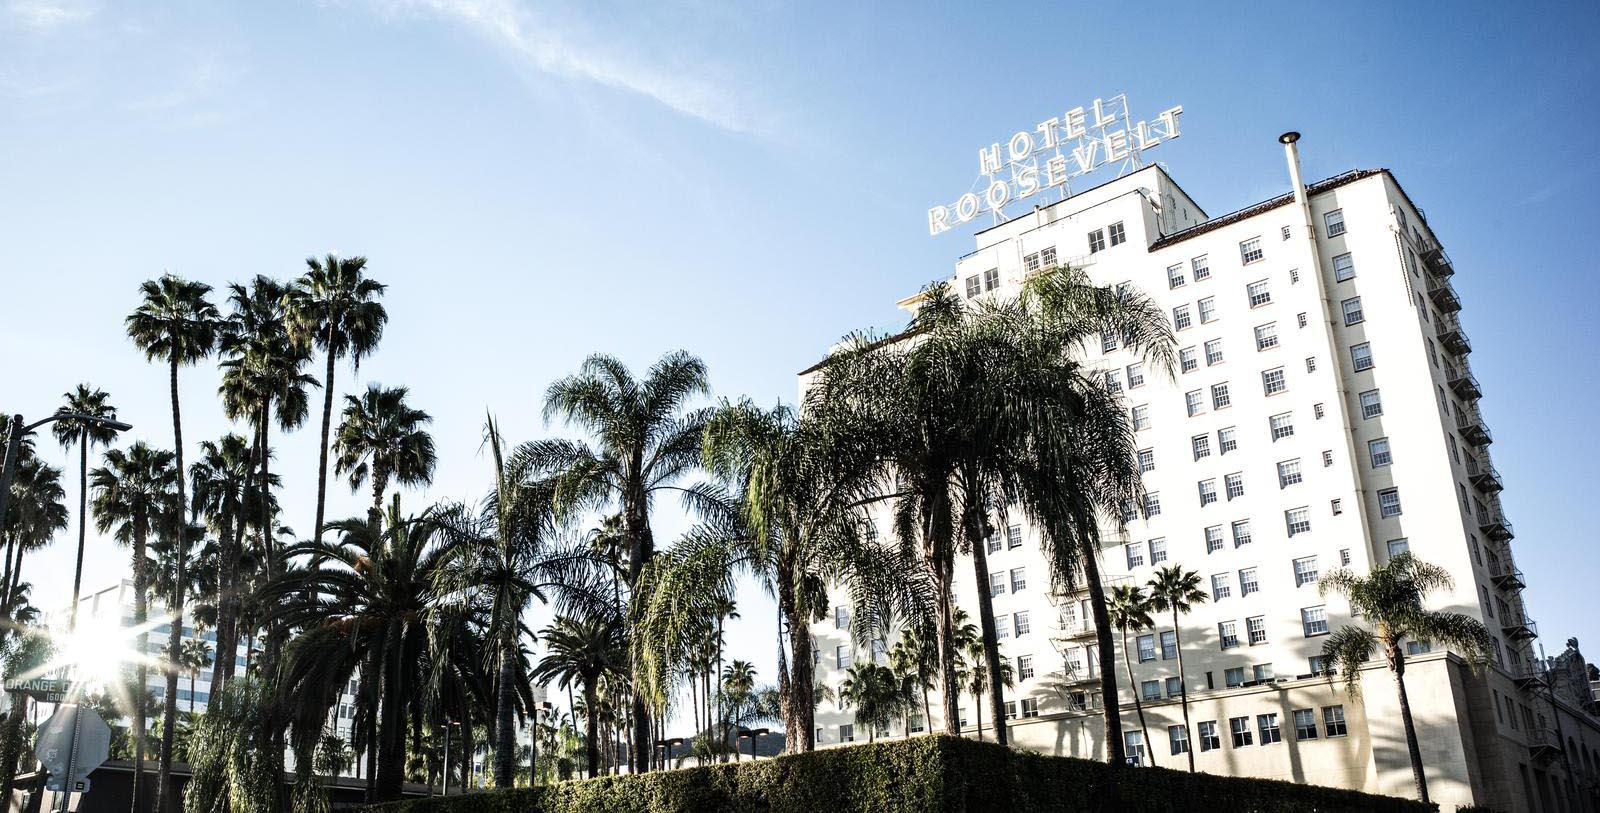 Image of Hotel Exterior with Palm Trees The Hollywood Roosevelt, 1927, Member of Historic Hotels of America, in Hollywood, California, Special Offers, Discounted Rates, Families, Romantic Escape, Honeymoons, Anniversaries, Reunions